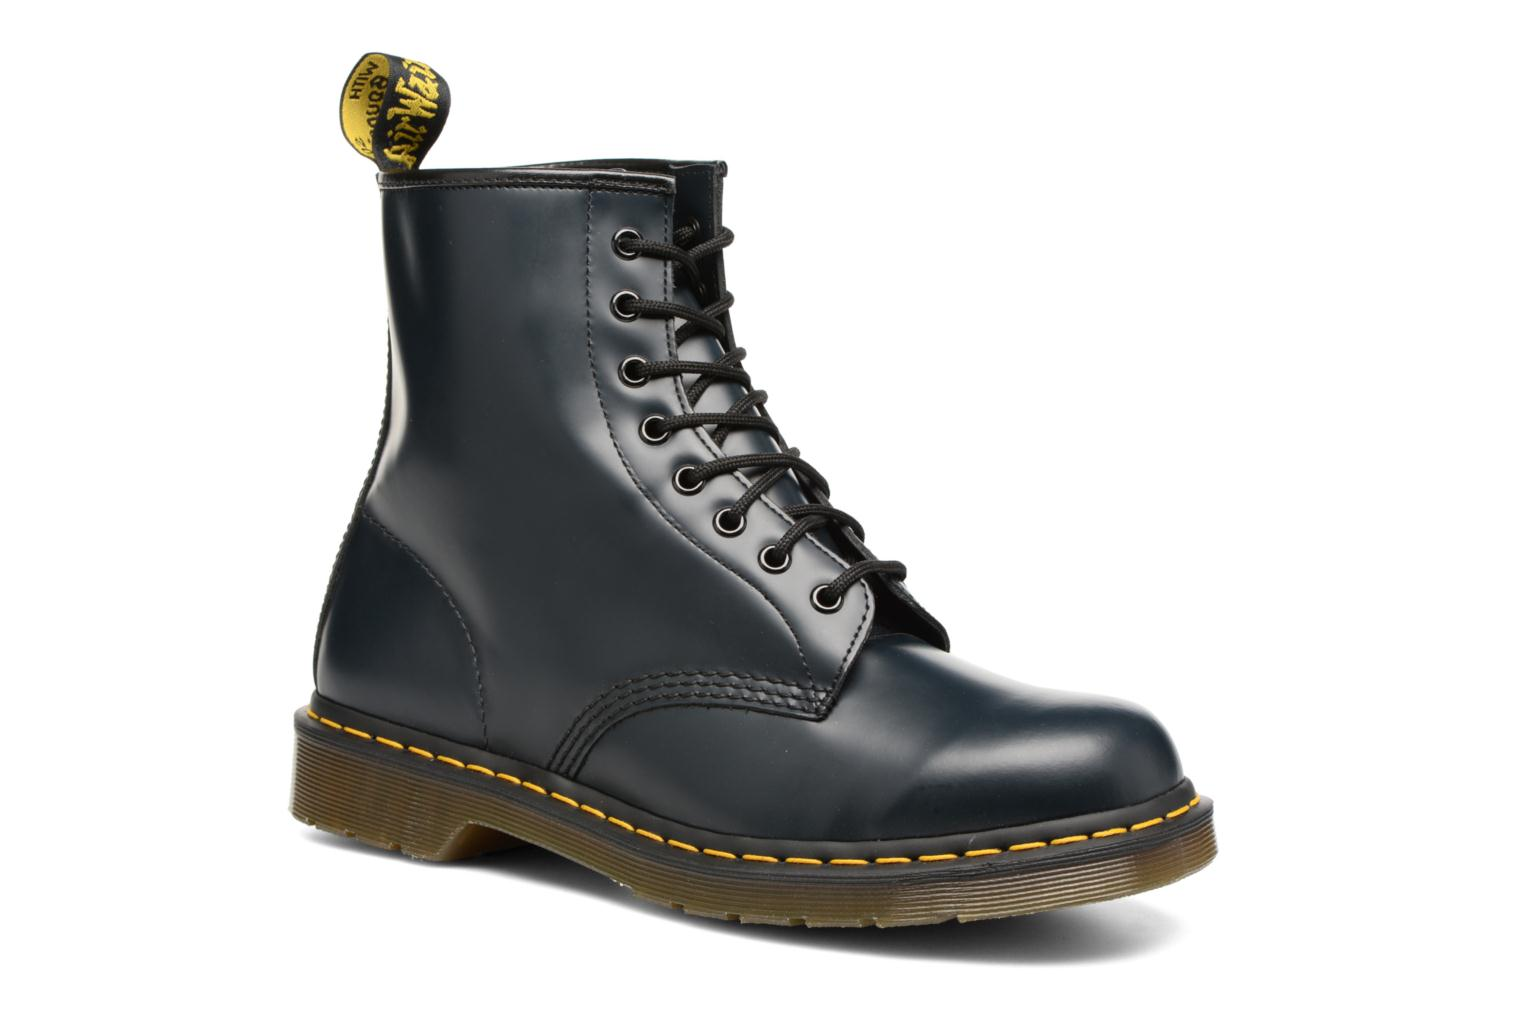 1460 M by Dr. Martens